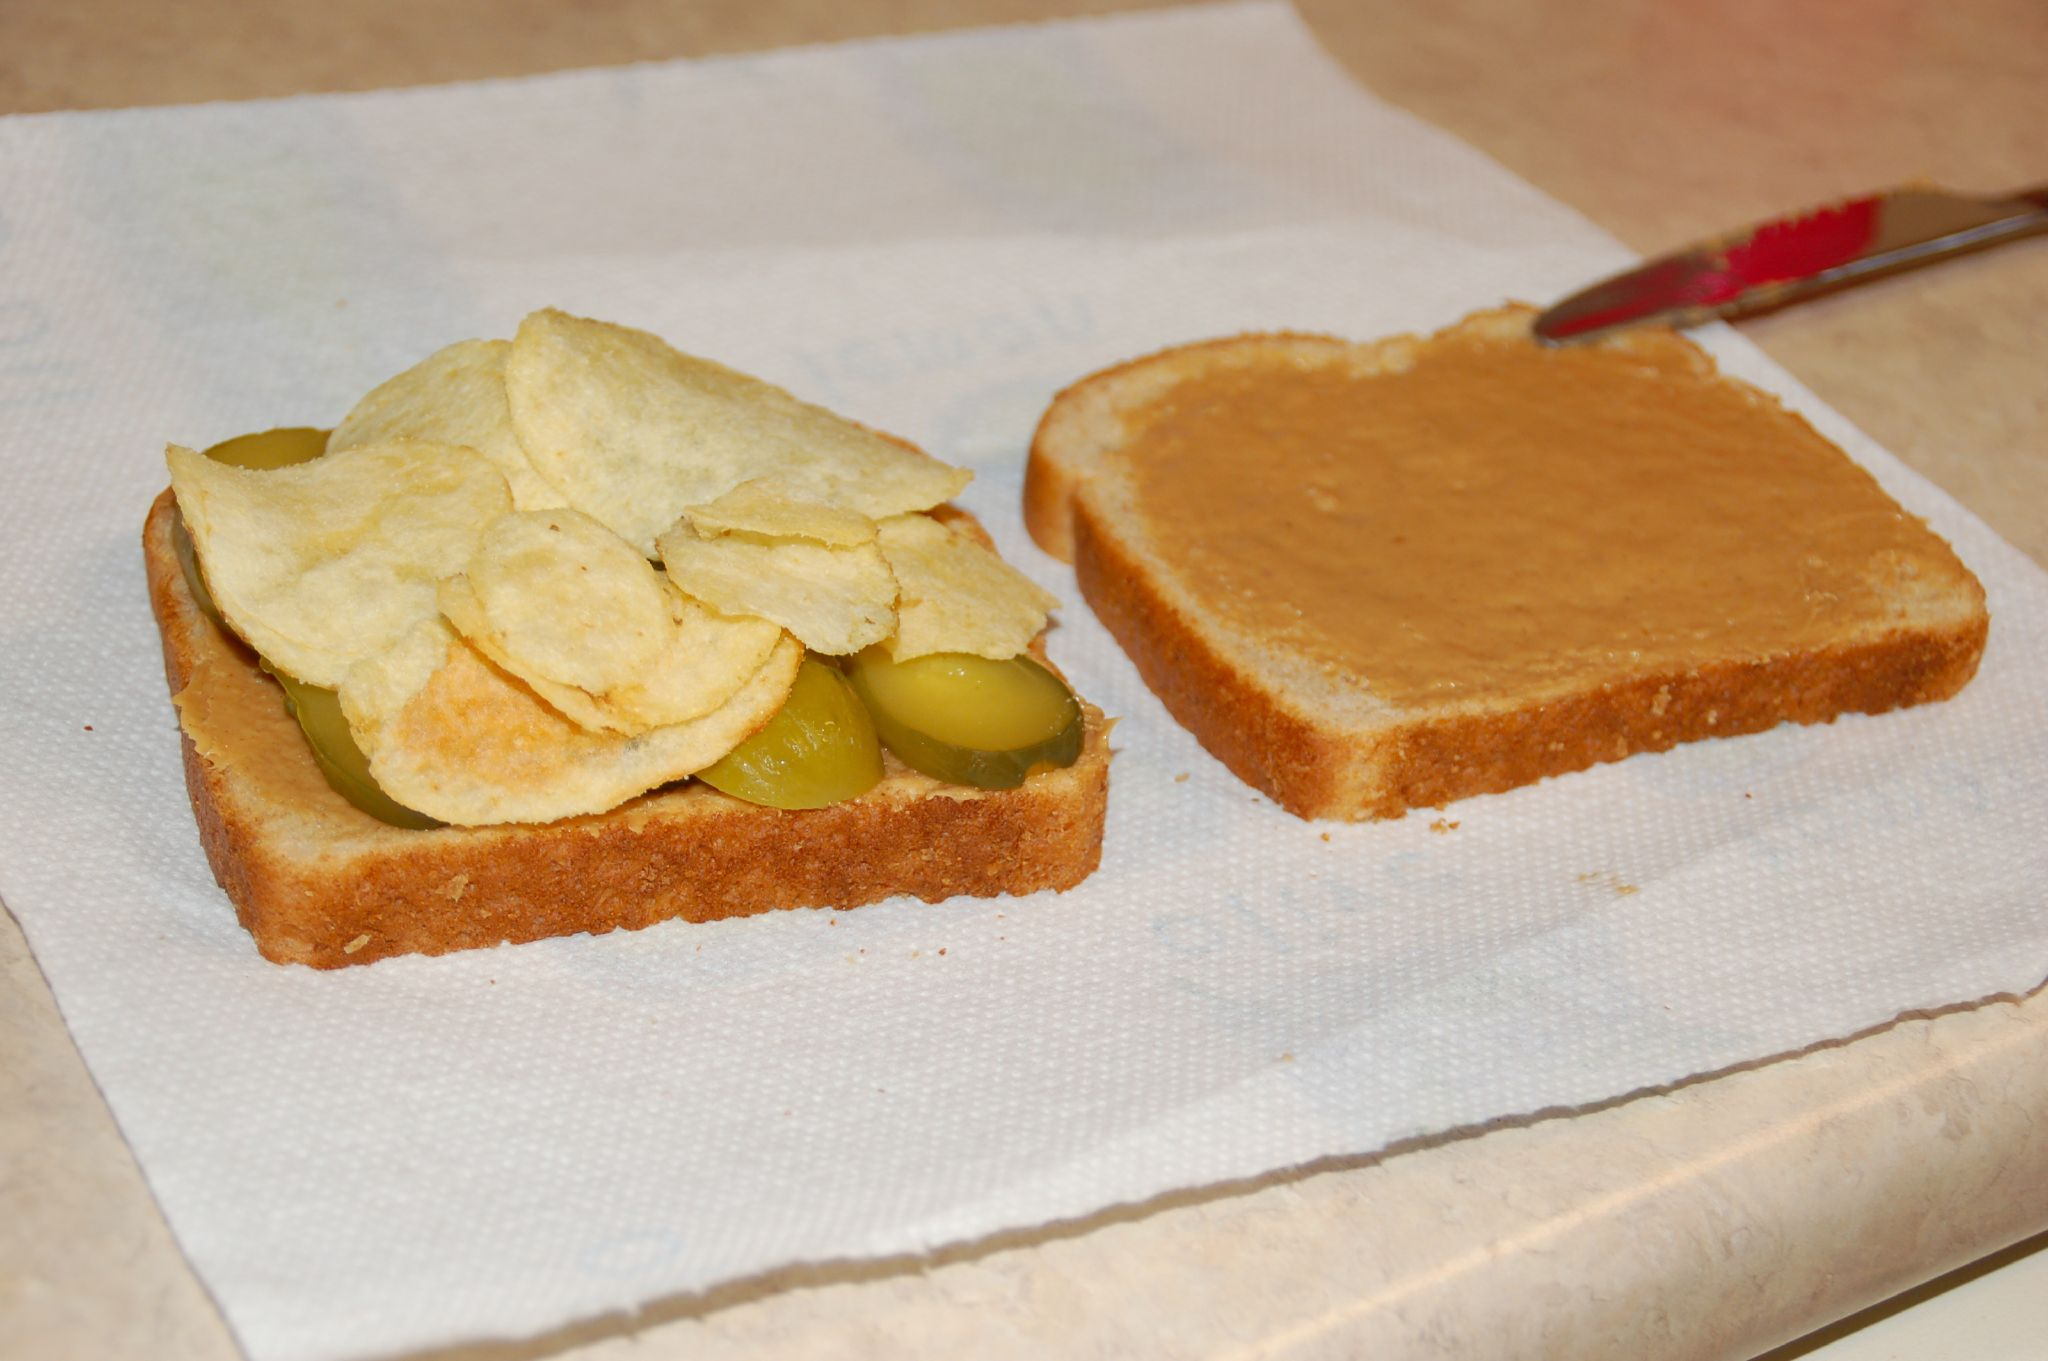 pregnancy craving potato chips peanut butter pickle sandwich